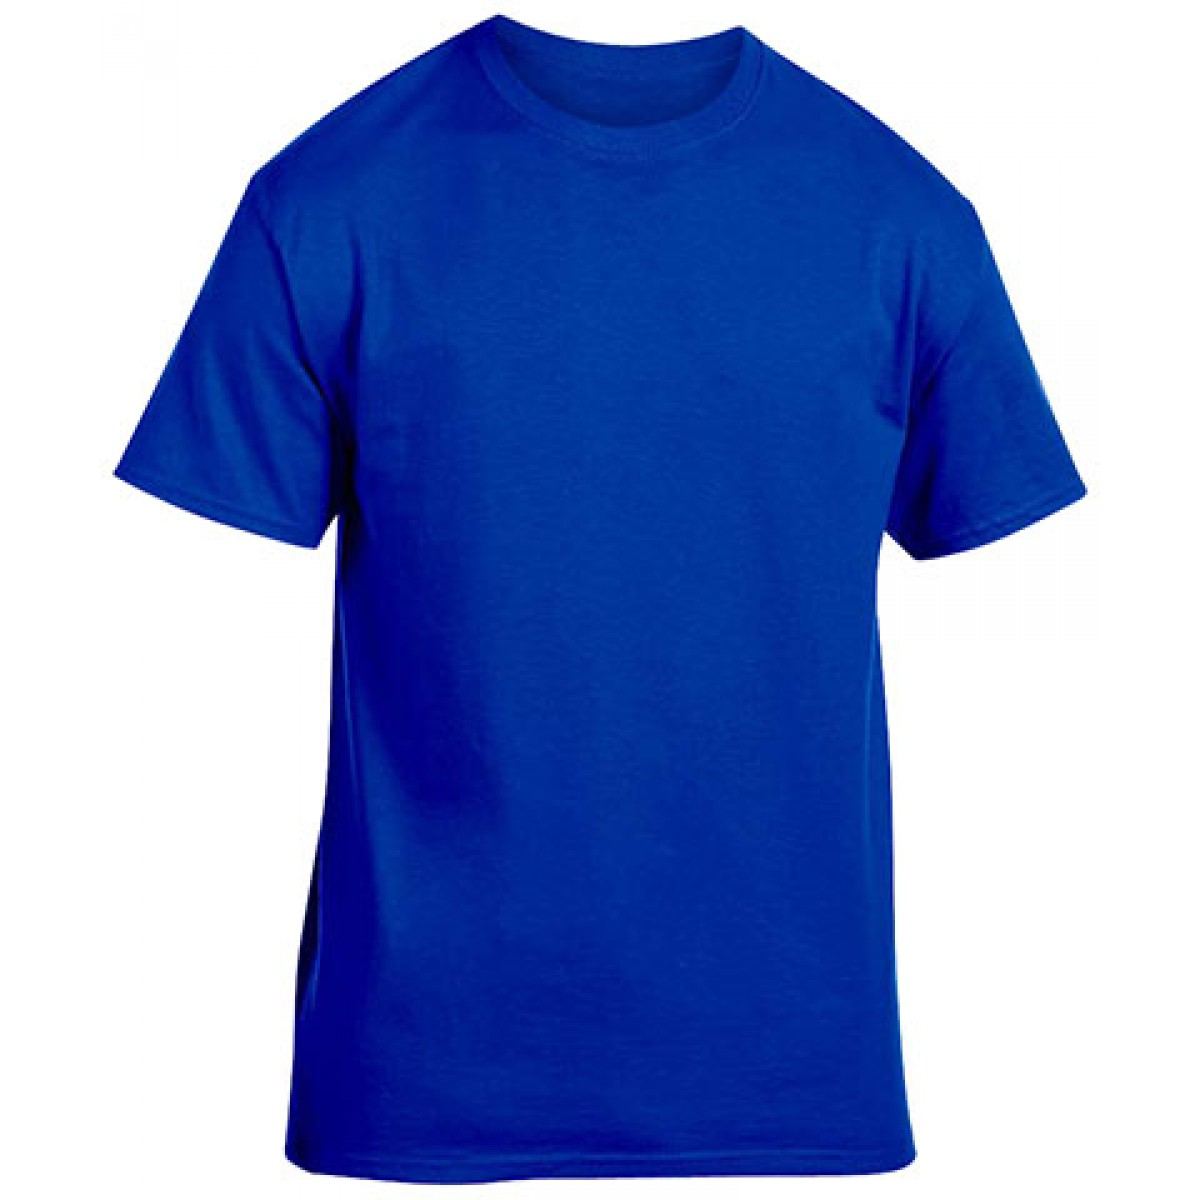 Heavy Cotton Activewear T-Shirt-Royal Blue-S